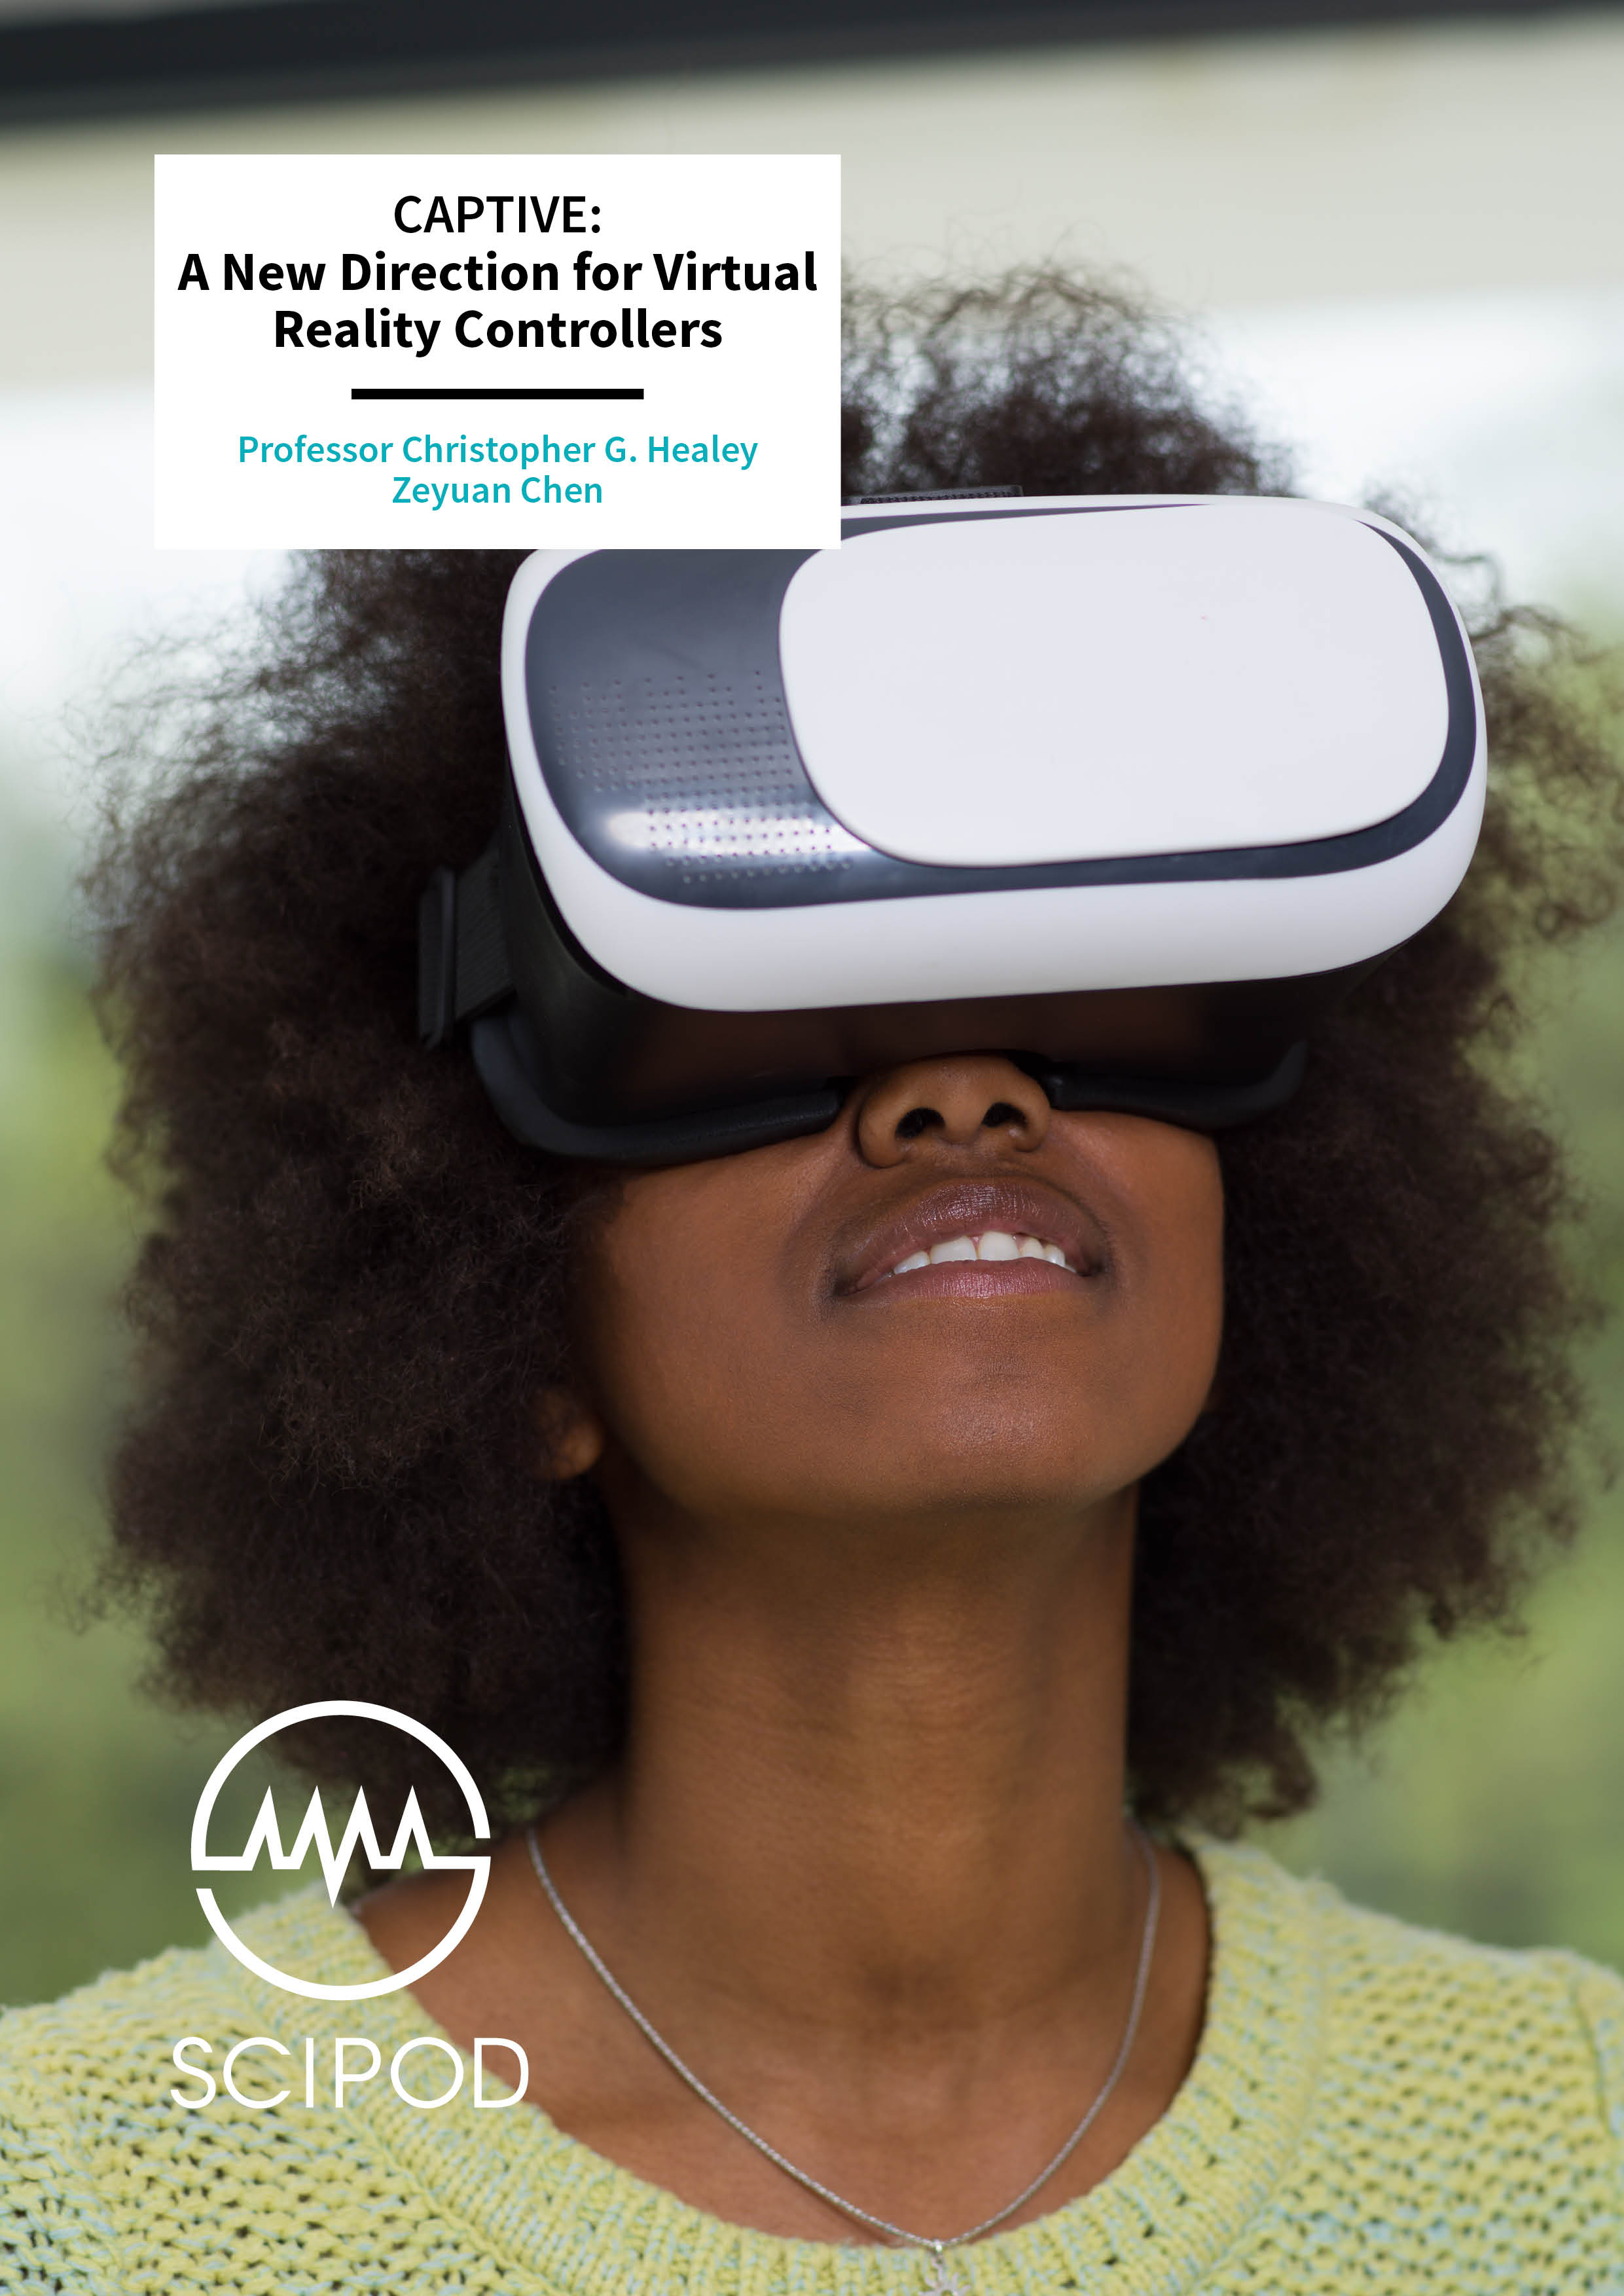 CAPTIVE: A New Direction for Virtual Reality Controllers – Professor Christopher G. Healey & Zeyuan Chen, North Carolina State University